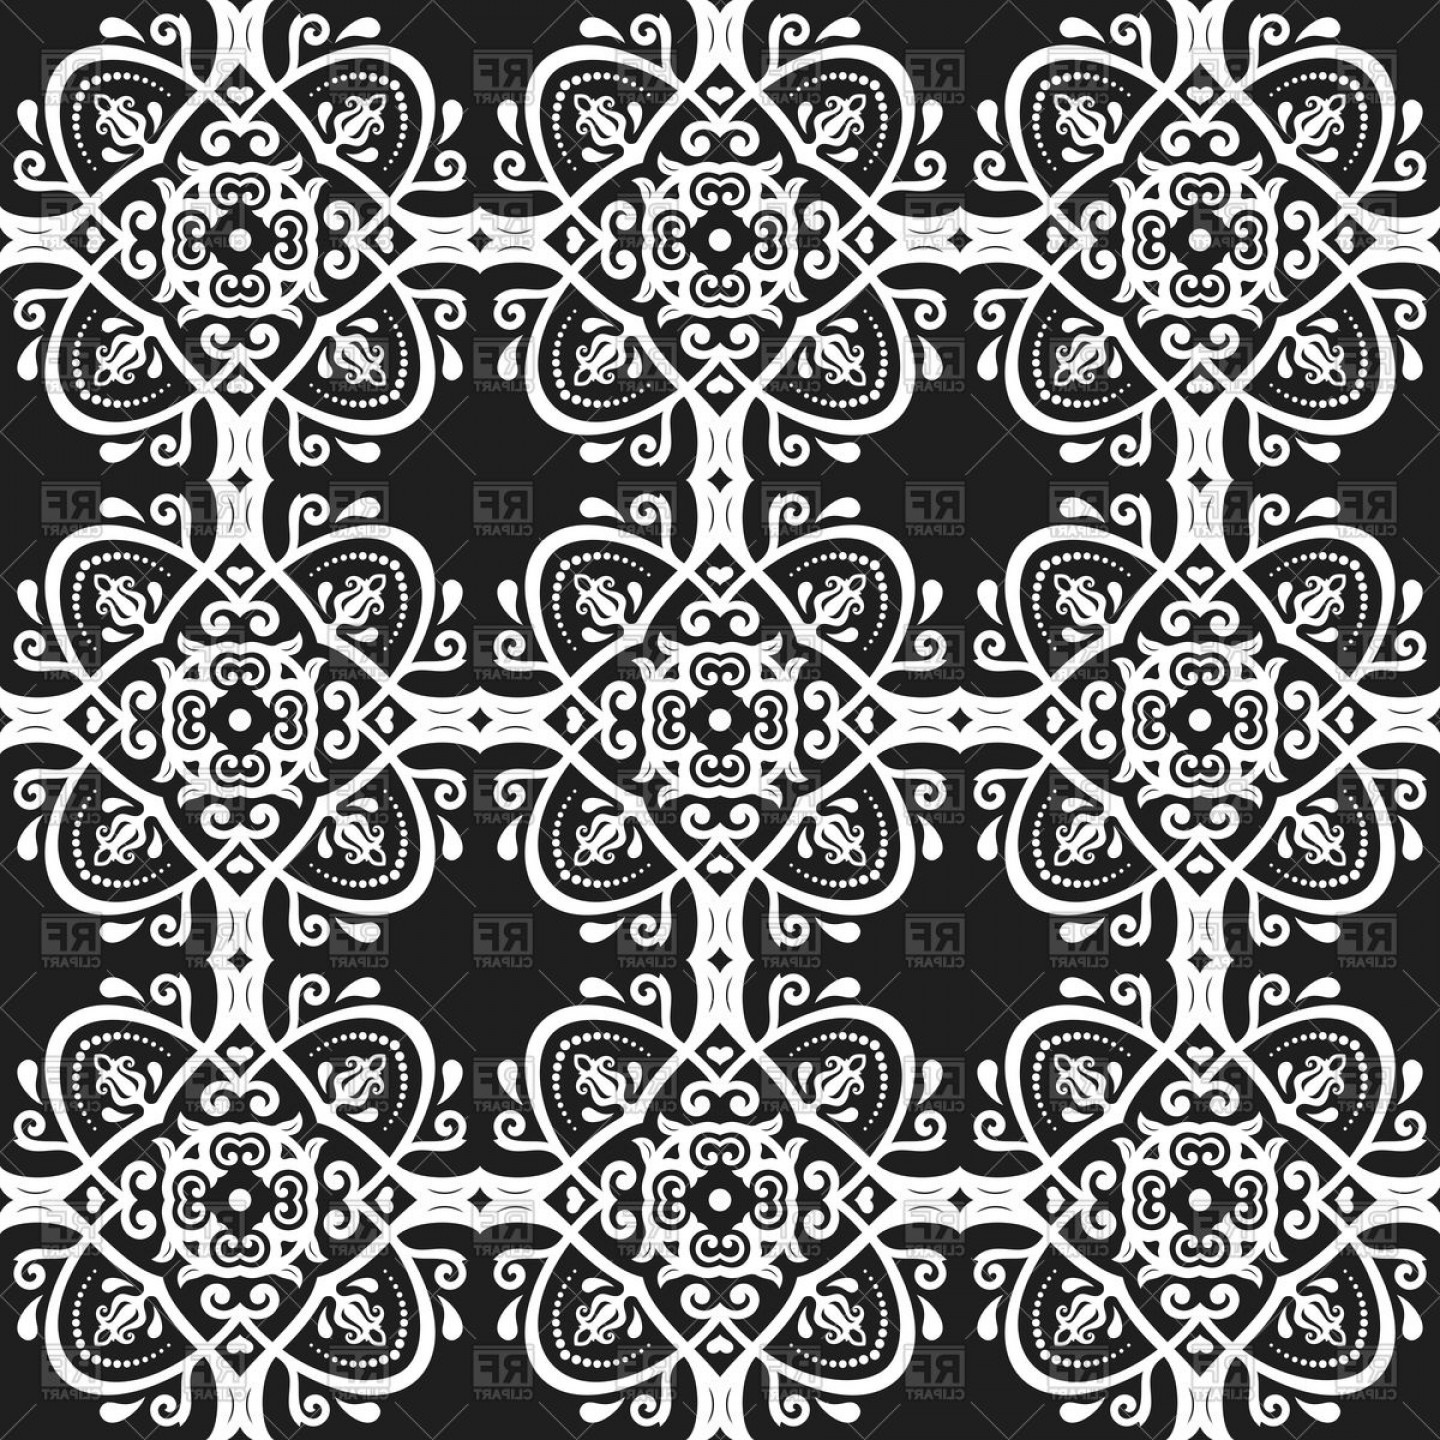 Geometric Vector B2: Seamless Geometric Black And White Pattern Vector Clipart